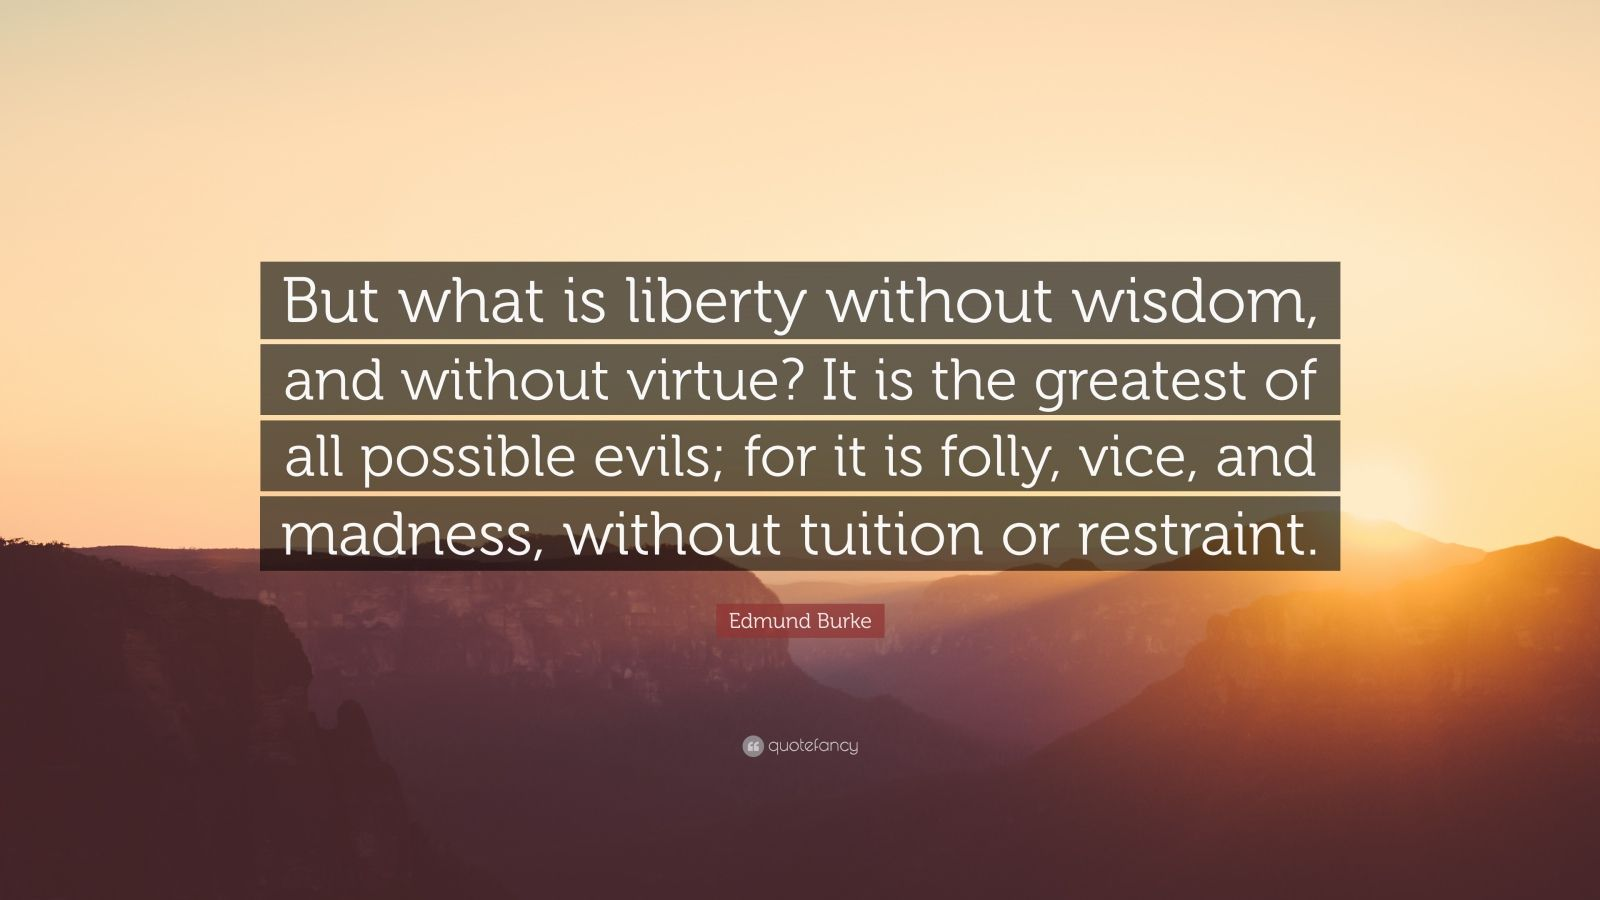 """Edmund Burke Quote: """"But what is liberty without wisdom, and without virtue? It is the greatest of all possible evils; for it is folly, vice, and madness, without tuition or restraint."""""""